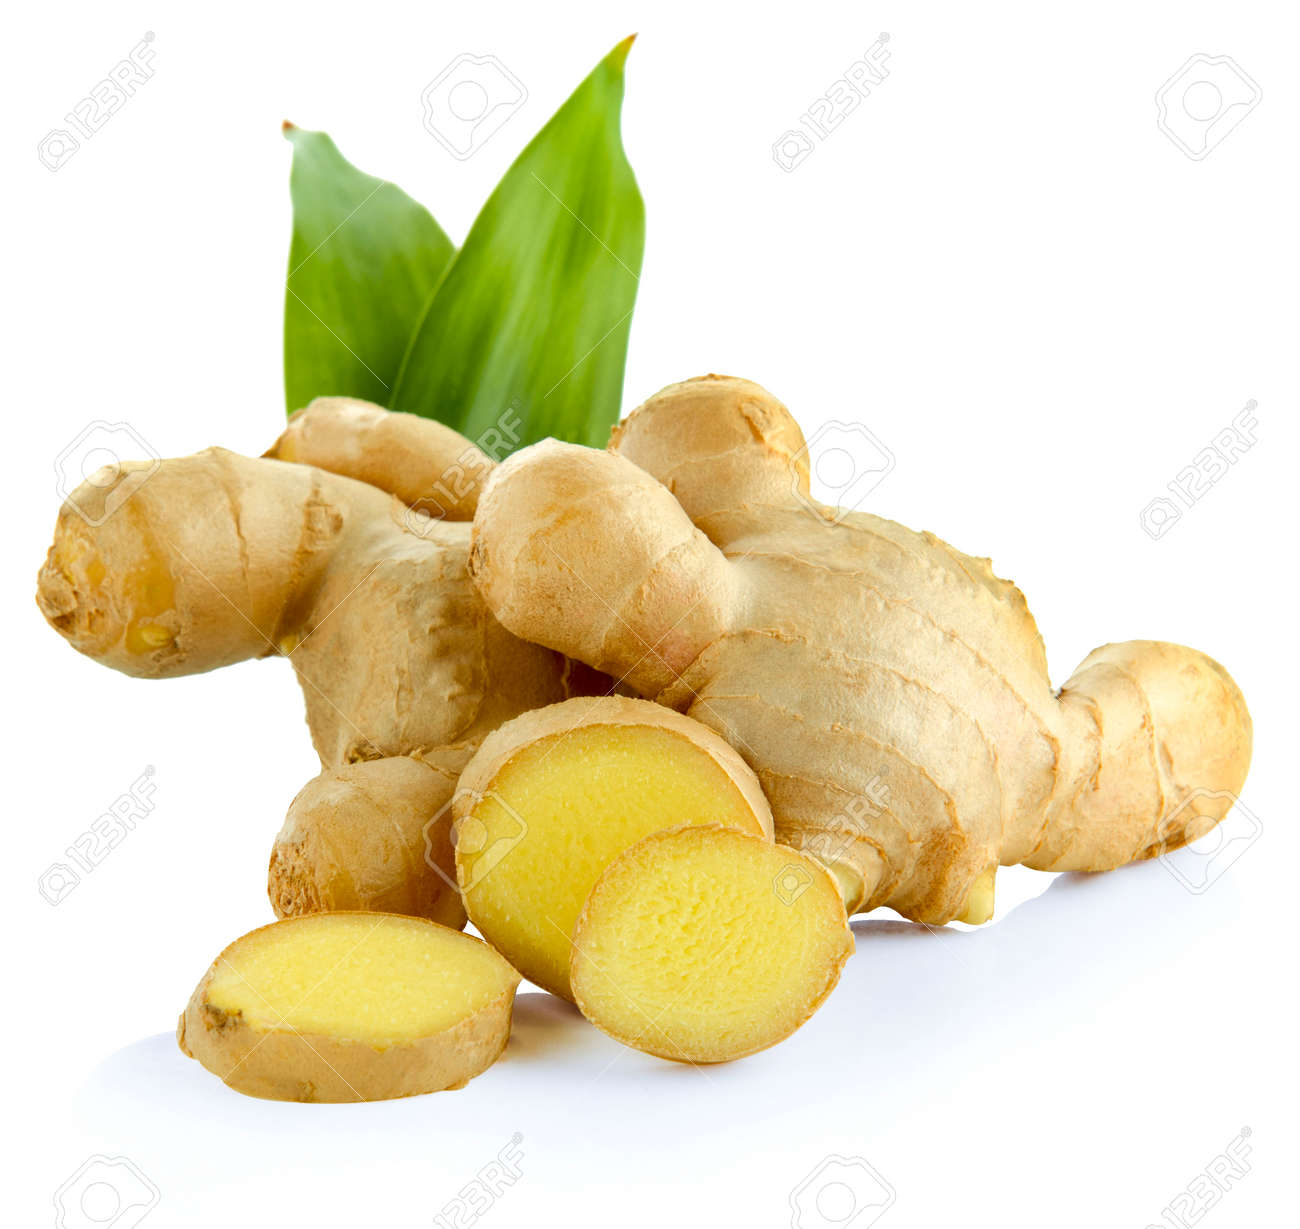 Fresh ginger with leaves isolated on white background. - 155048026